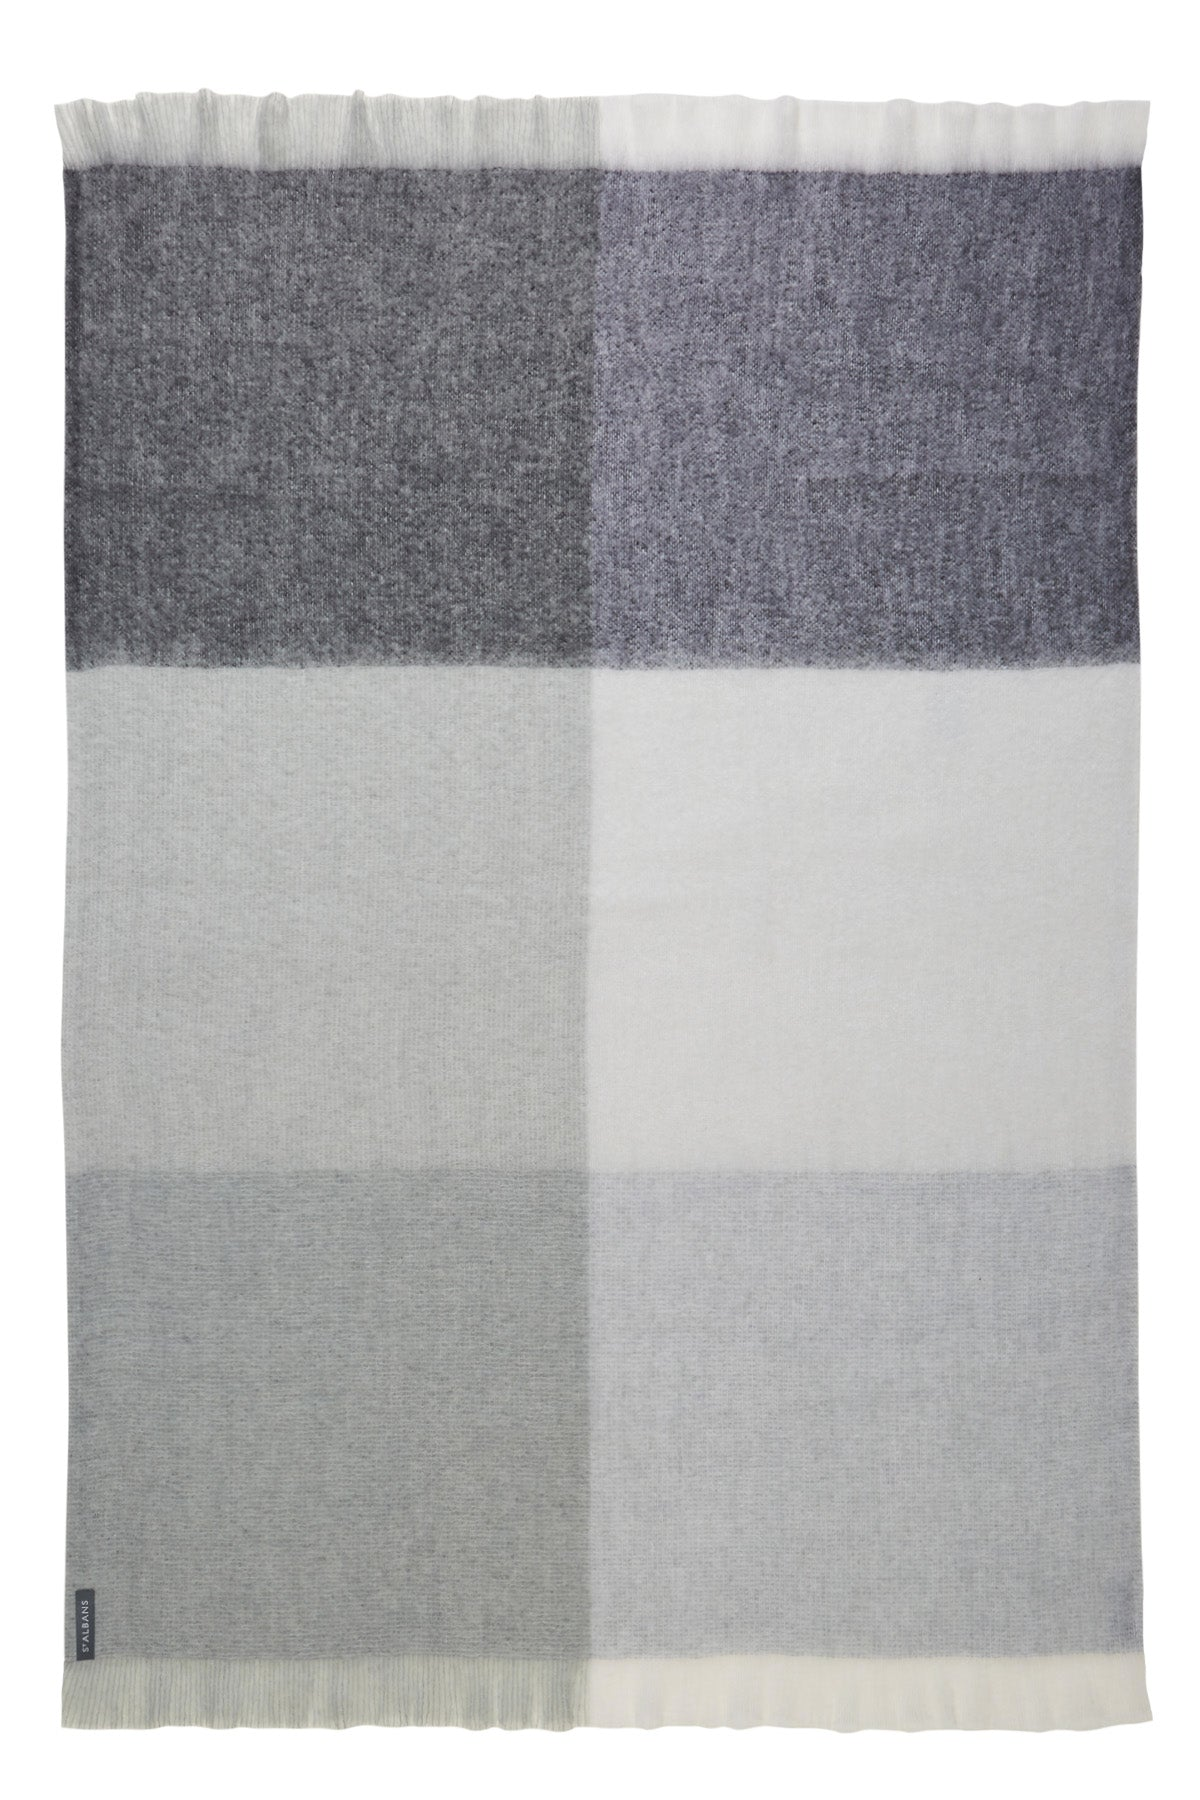 St Albans Mohair in Ghost is a combination of grey and neutral block checks in a contemporary pattern.